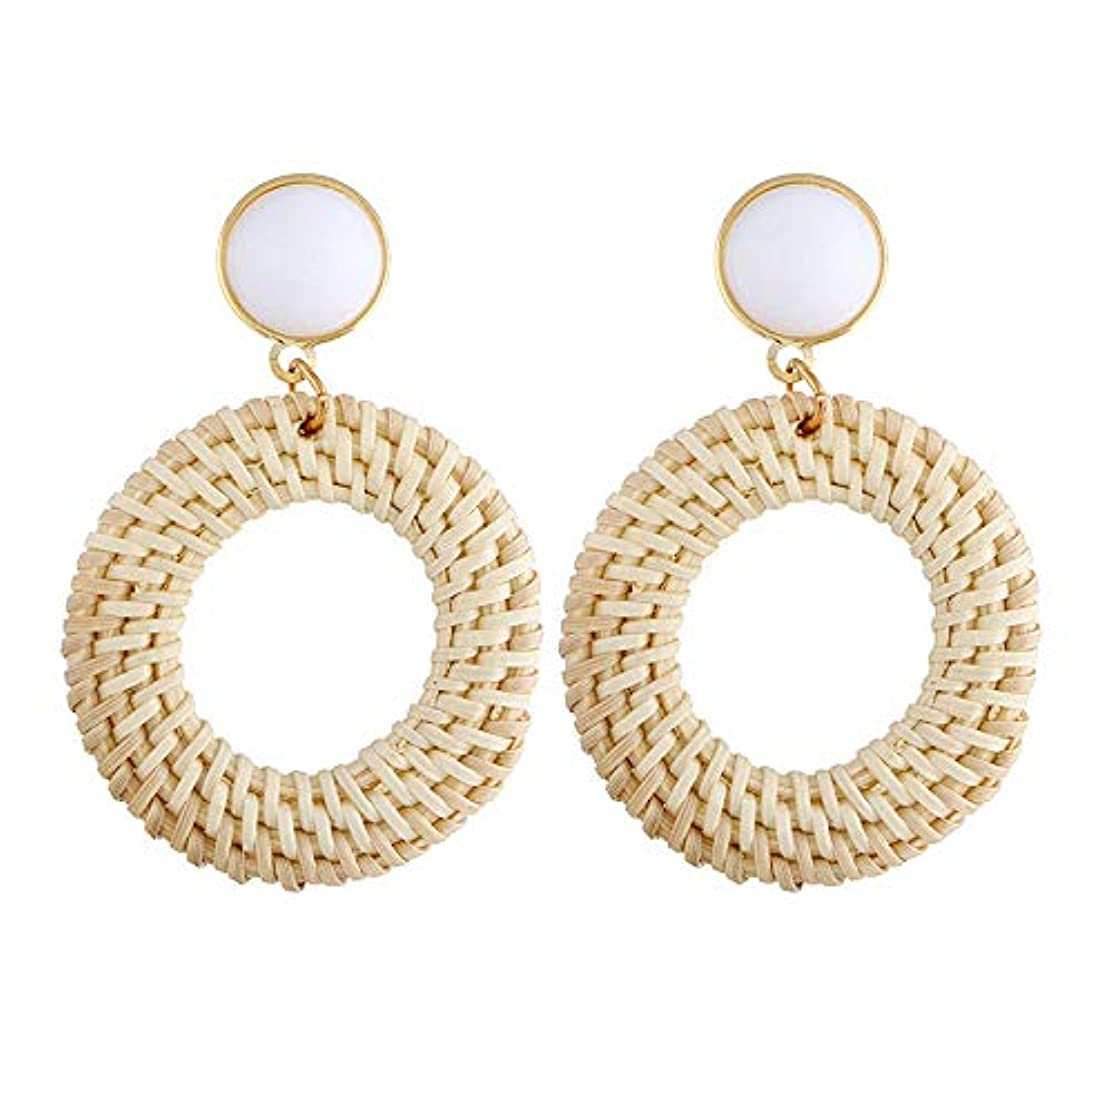 Rattan Earrings for Women Bohemian Woven Handmade Statement Earrings for Girls Mothers Day Gifts